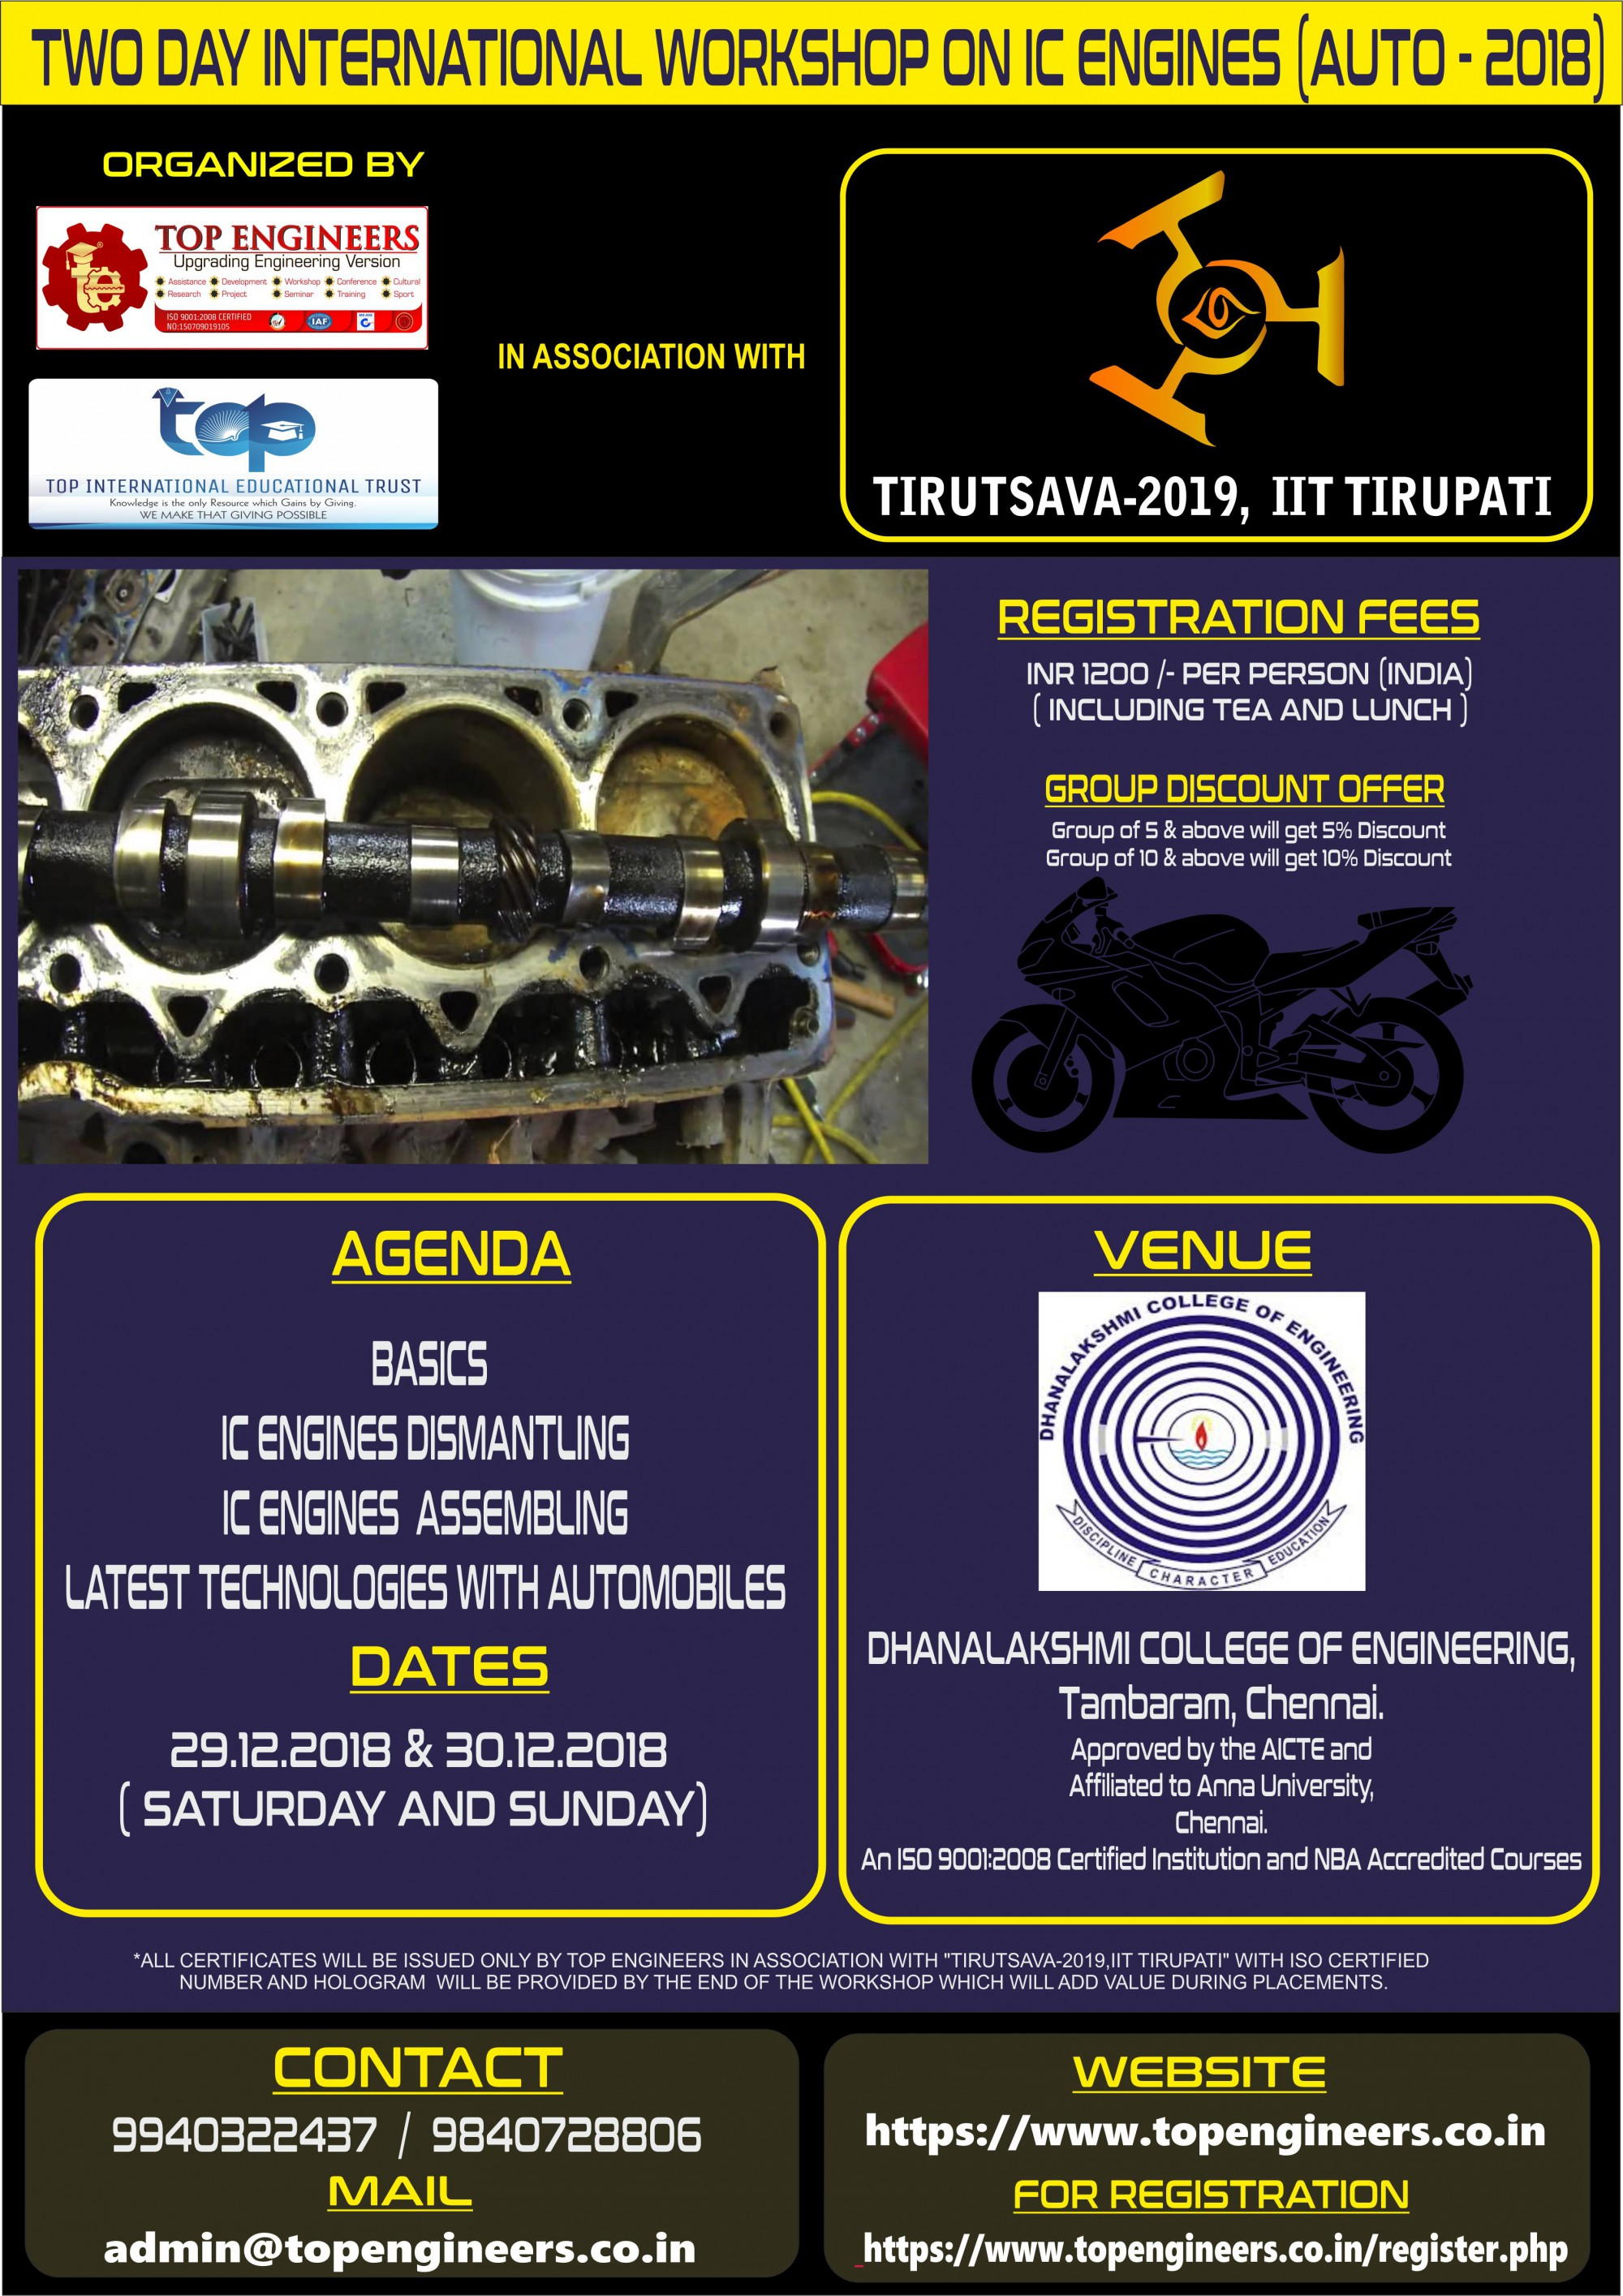 Two Day International Workshop on IC Engines Auto 2018